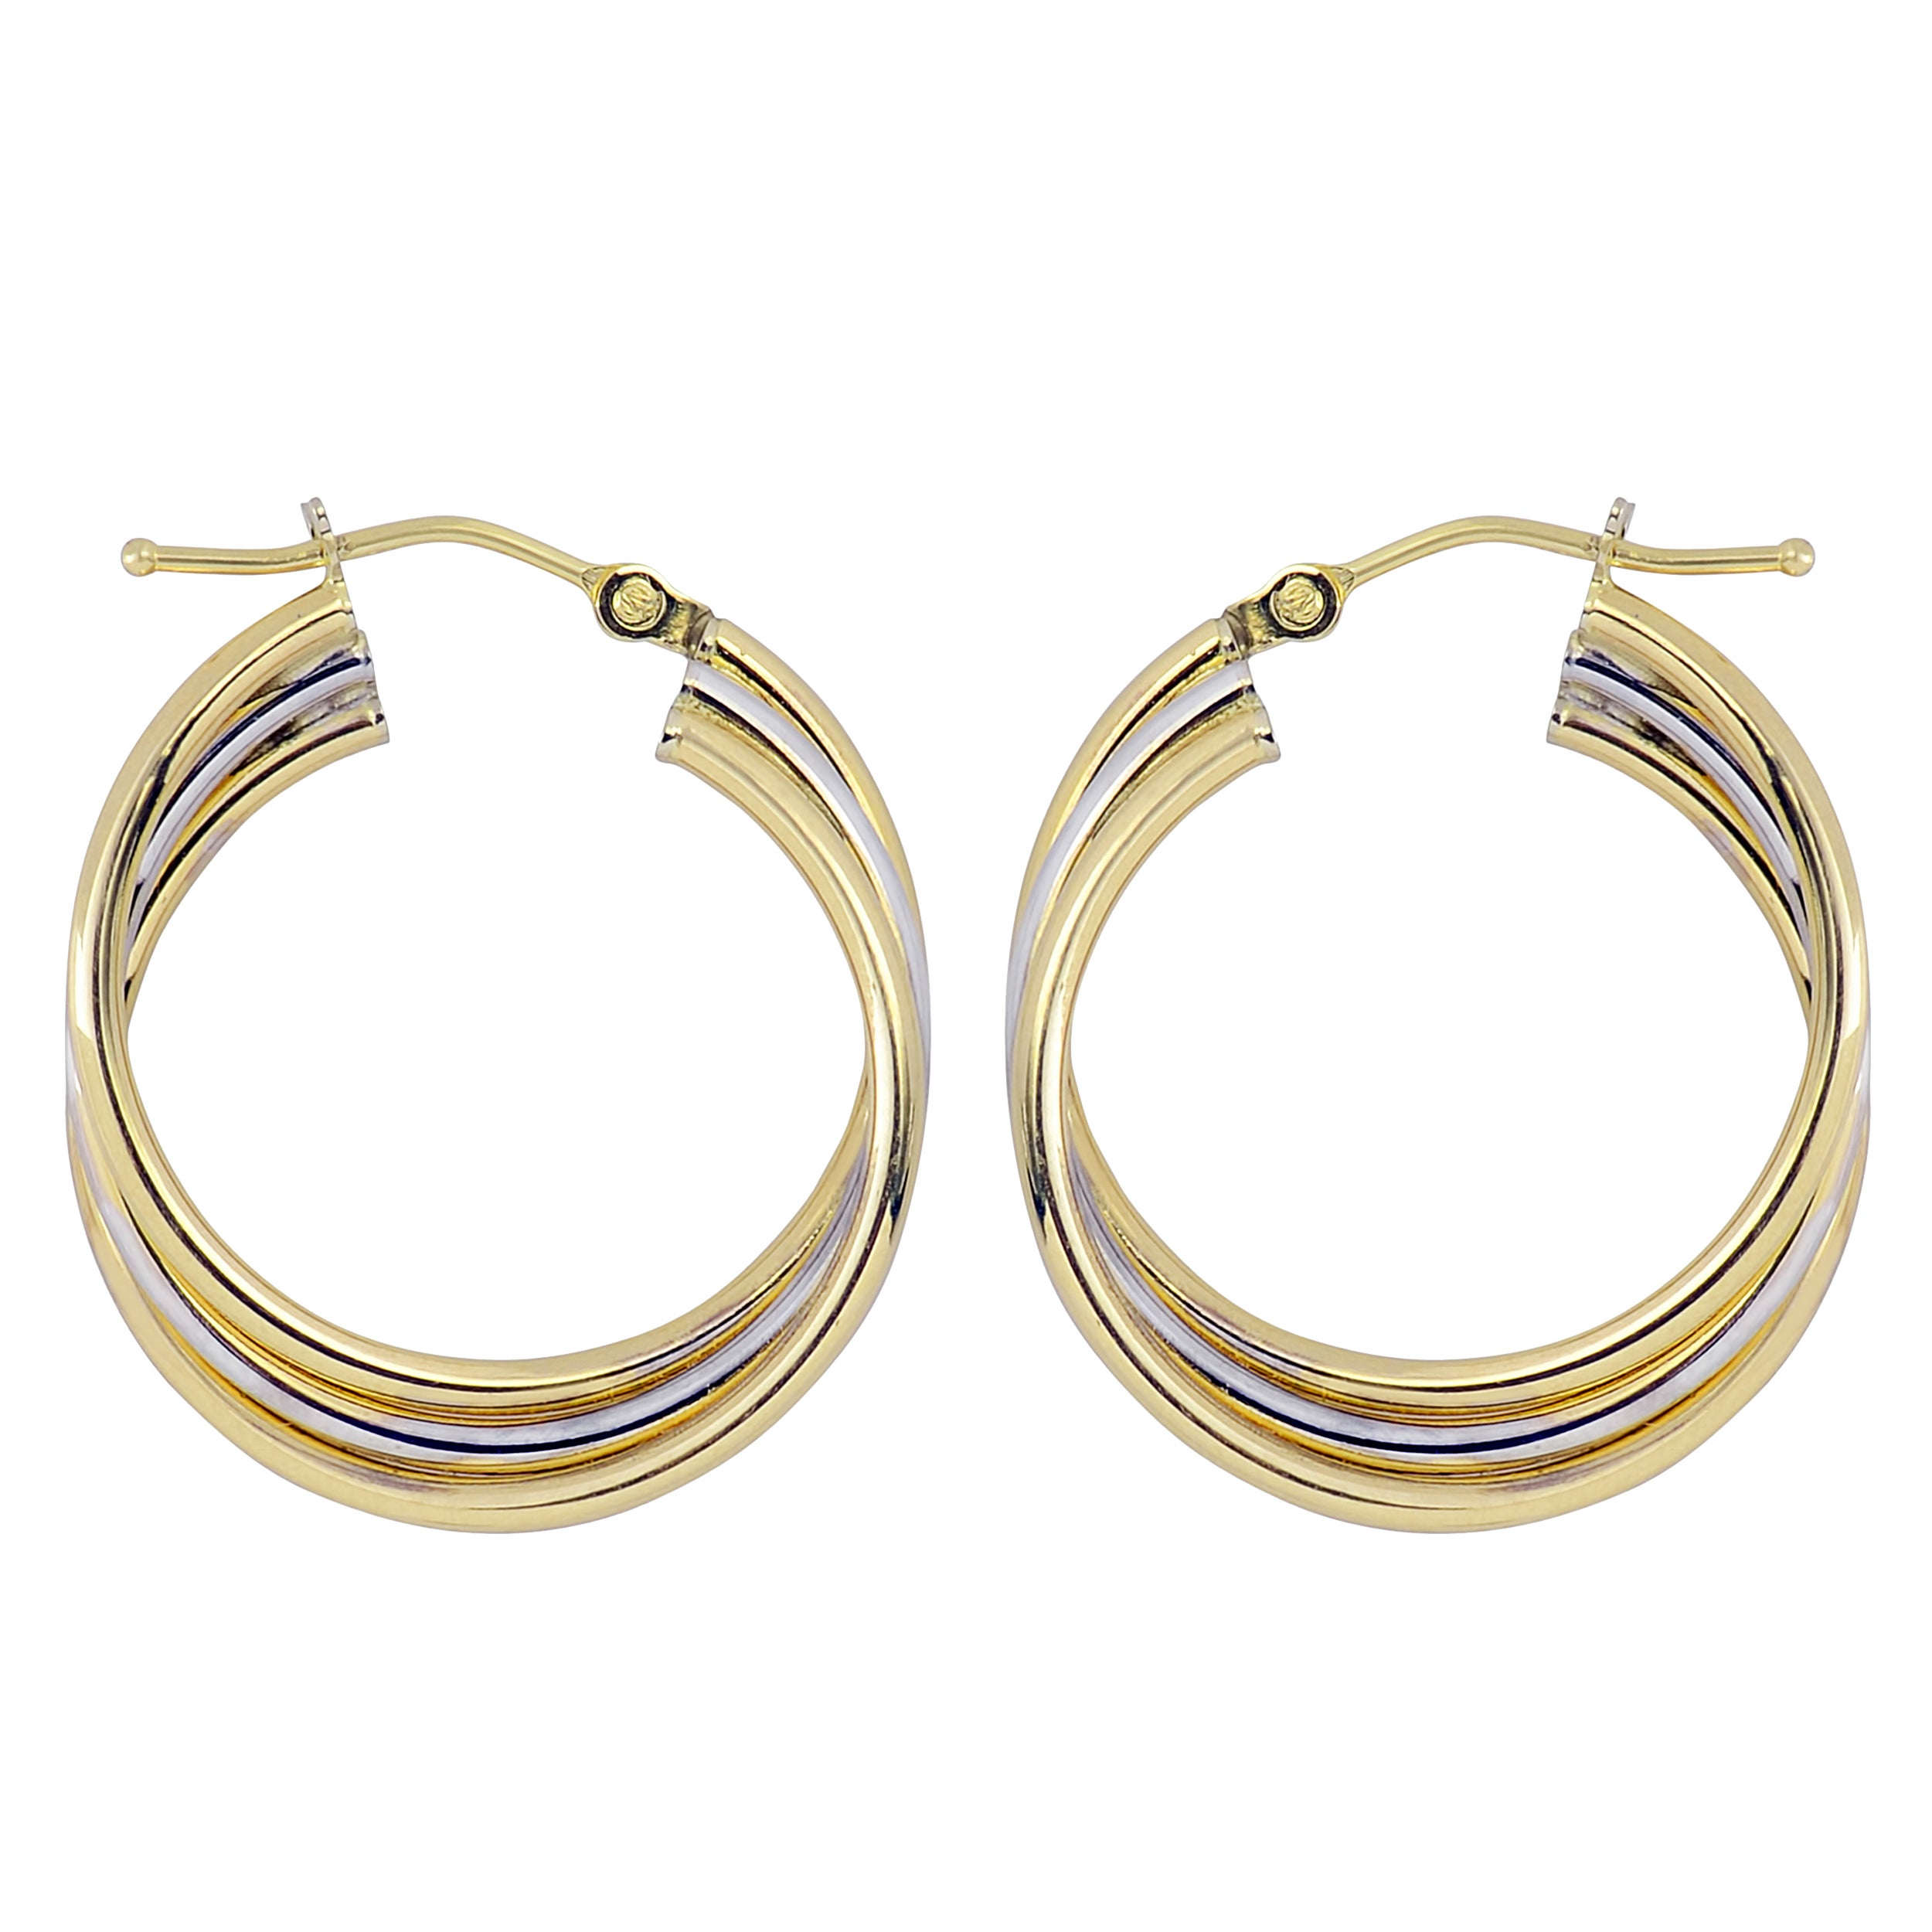 Details about  /Real 10k Two-tone White and Yellow Gold Polished Twisted Hoop Earrings; Women